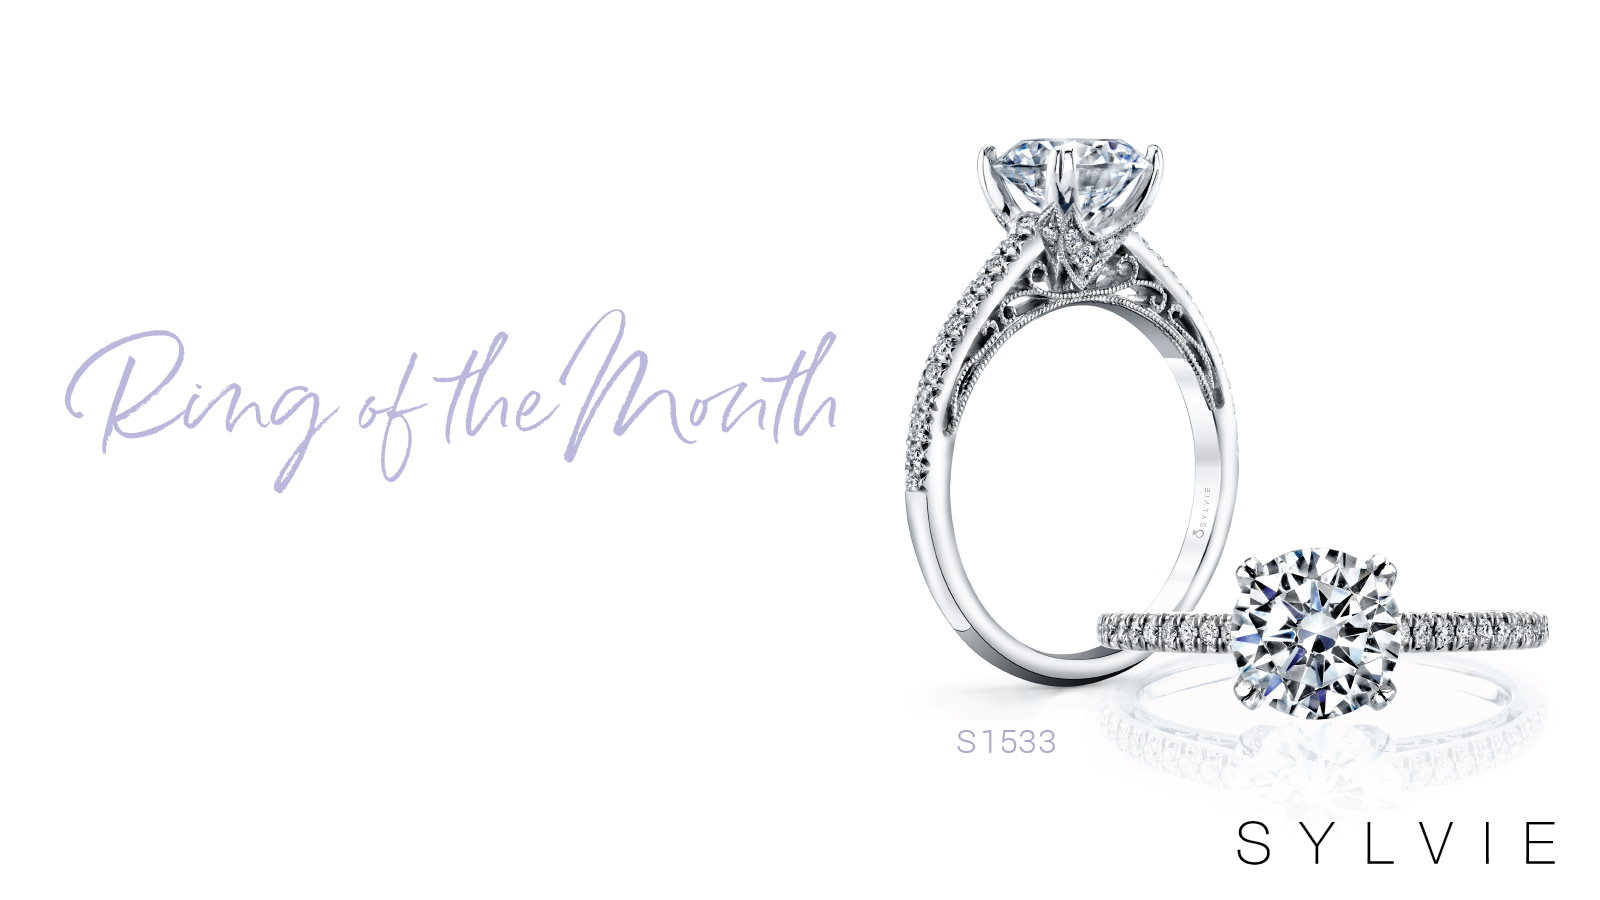 Sylvie's Ring of the Month - Classic Solitaire Engagement Ring